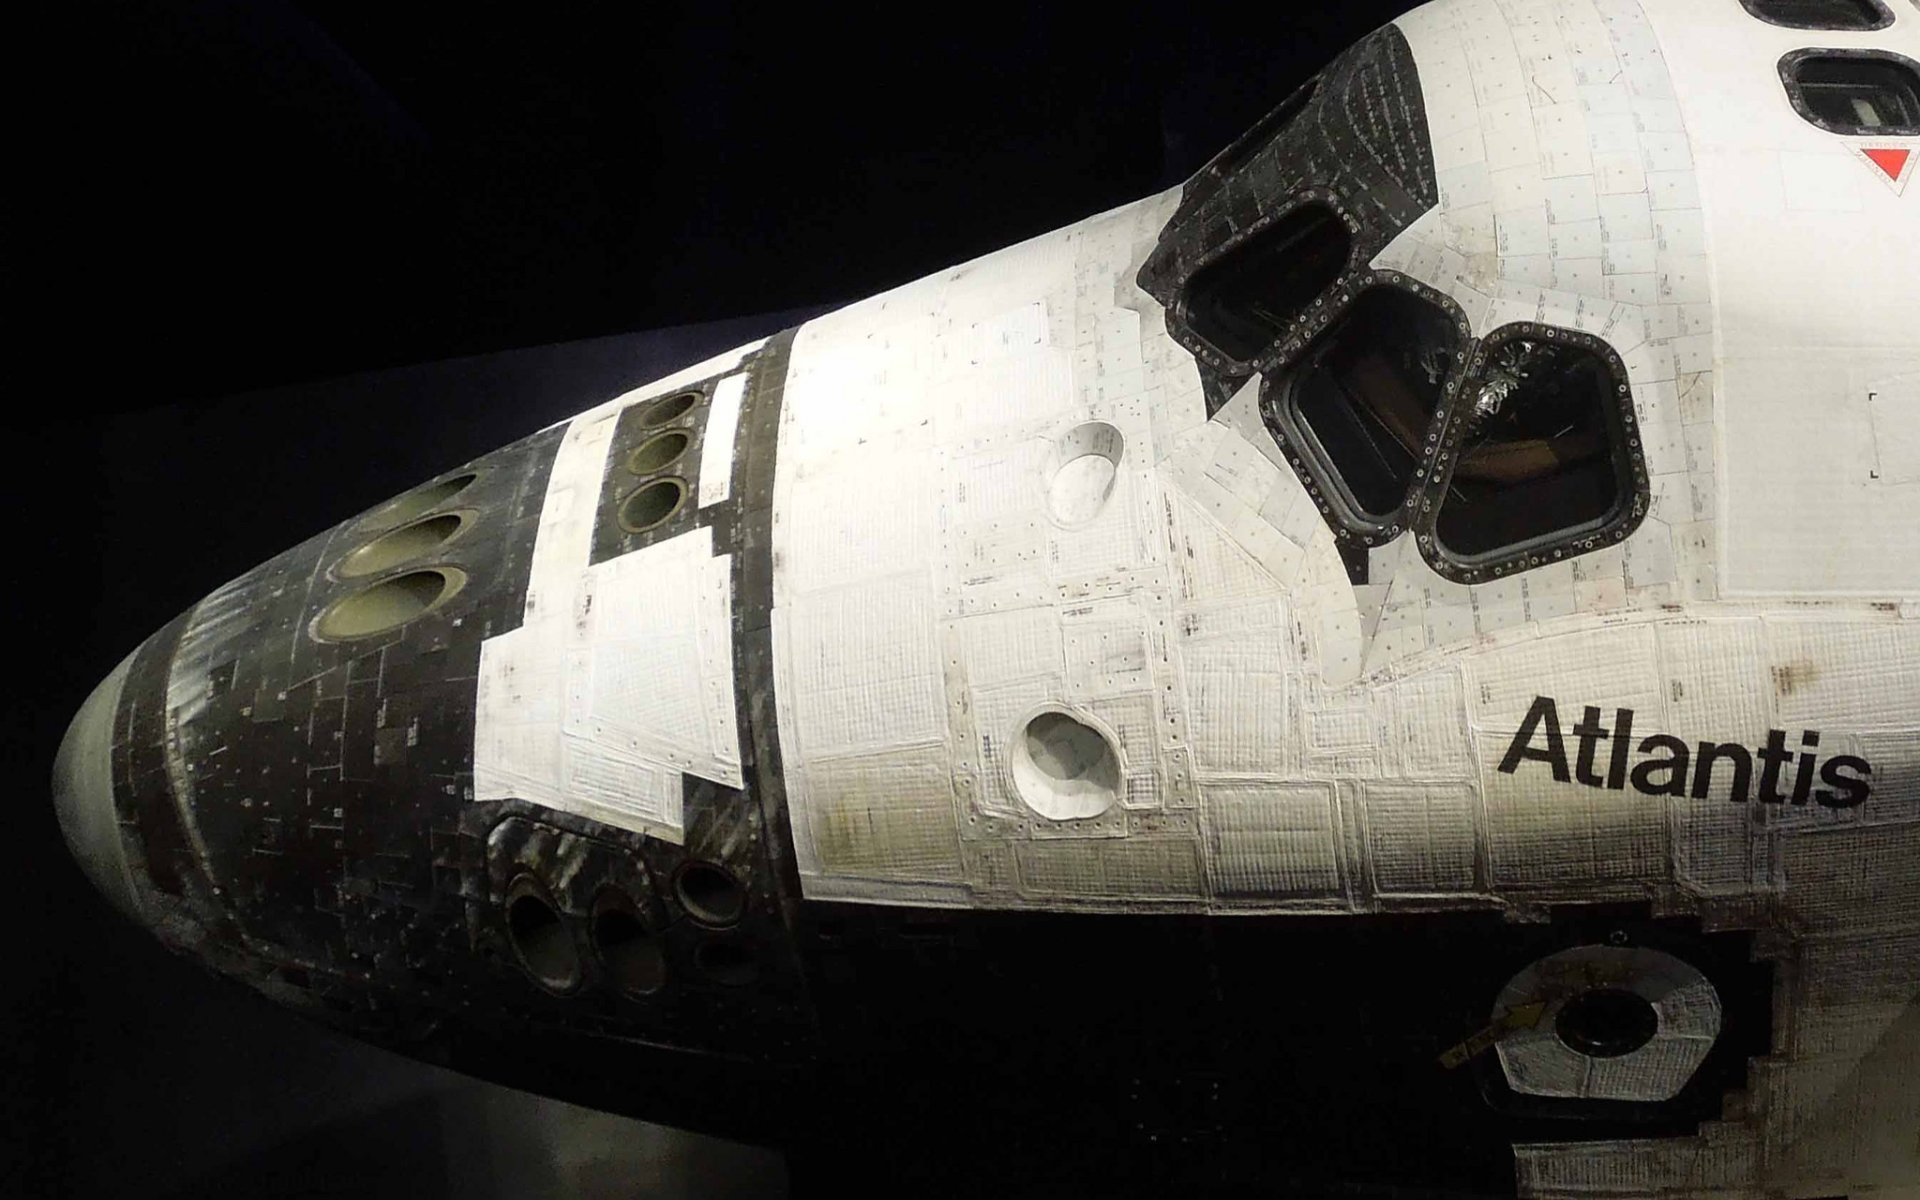 High resolution Space Shuttle Atlantis hd 1920x1200 background ID:460460 for computer